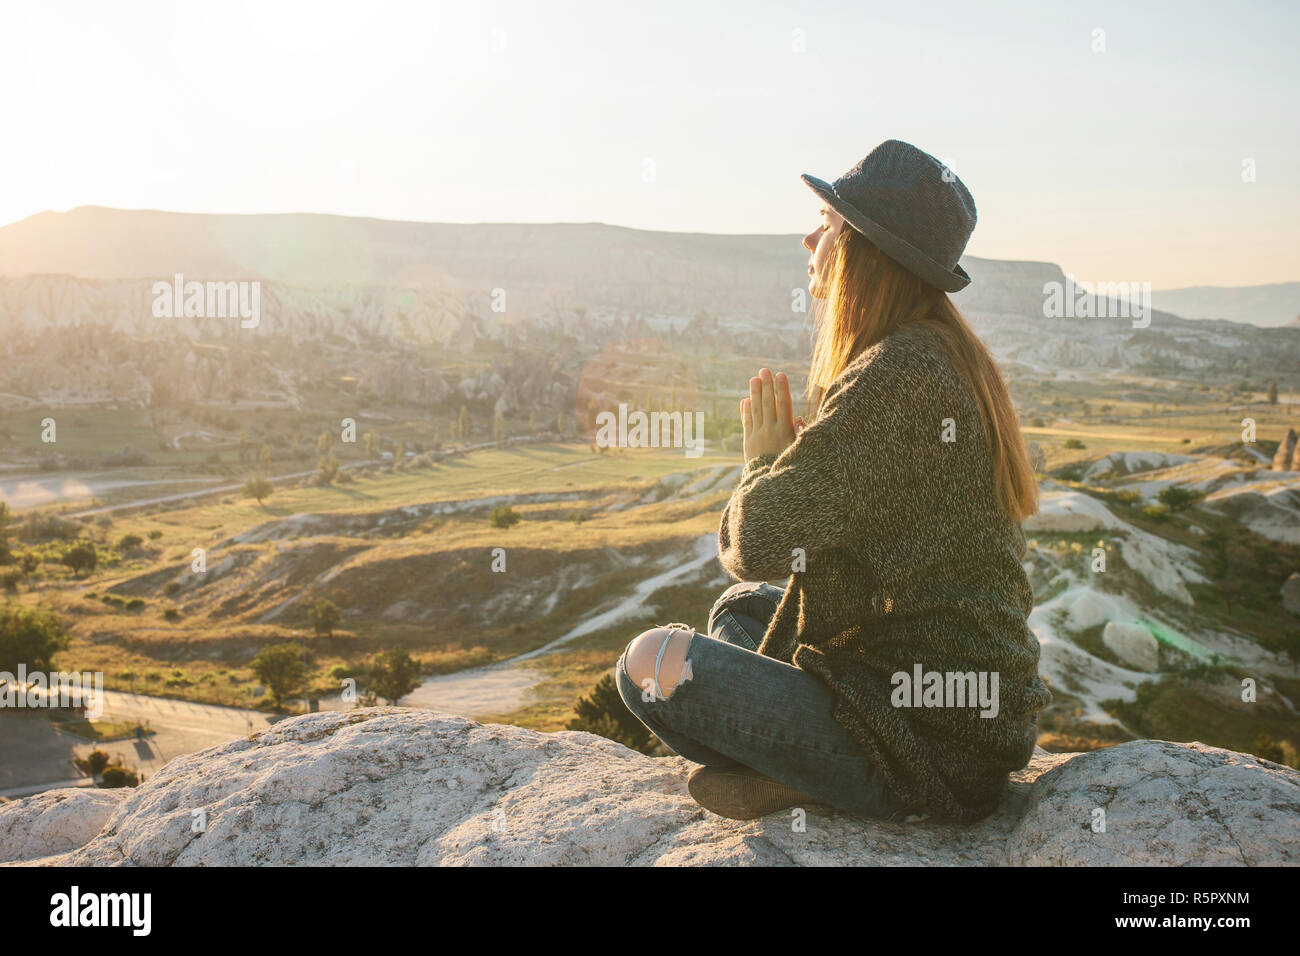 A girl practices yoga or meditation or searching for a soul. Solitude and unplugged - Stock Image